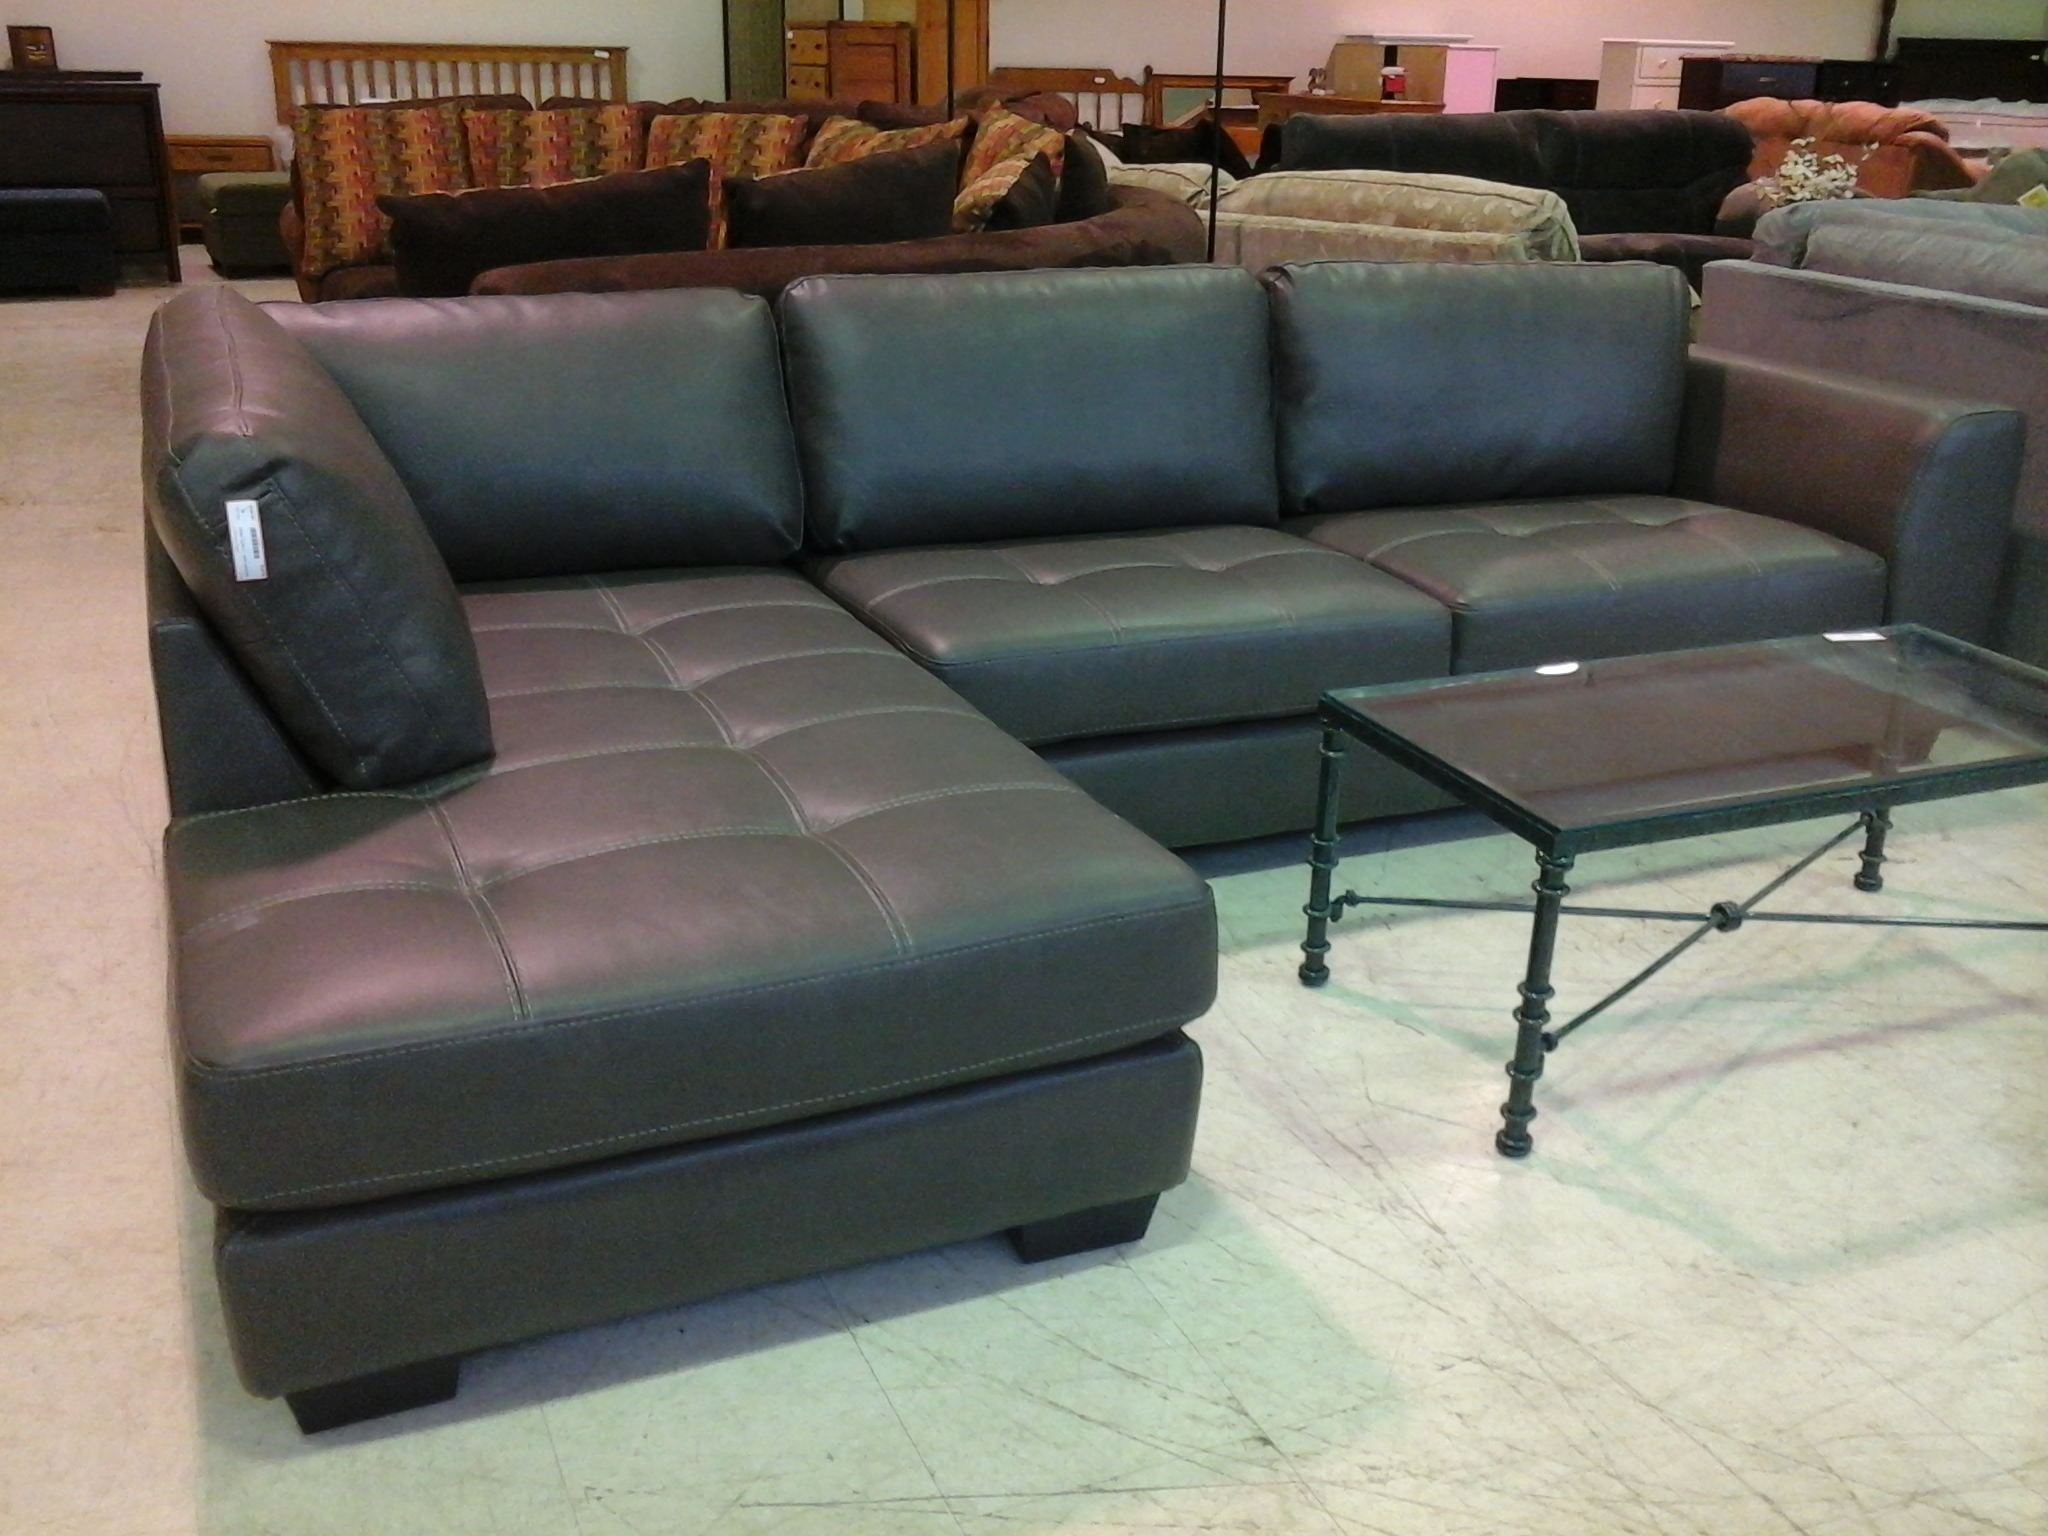 Leather Sectional Sleeper Sofas With Chaise Within Well Known Brown Leather Sectional Sleeper Sofa 39 With Brown Leather In New (View 8 of 15)